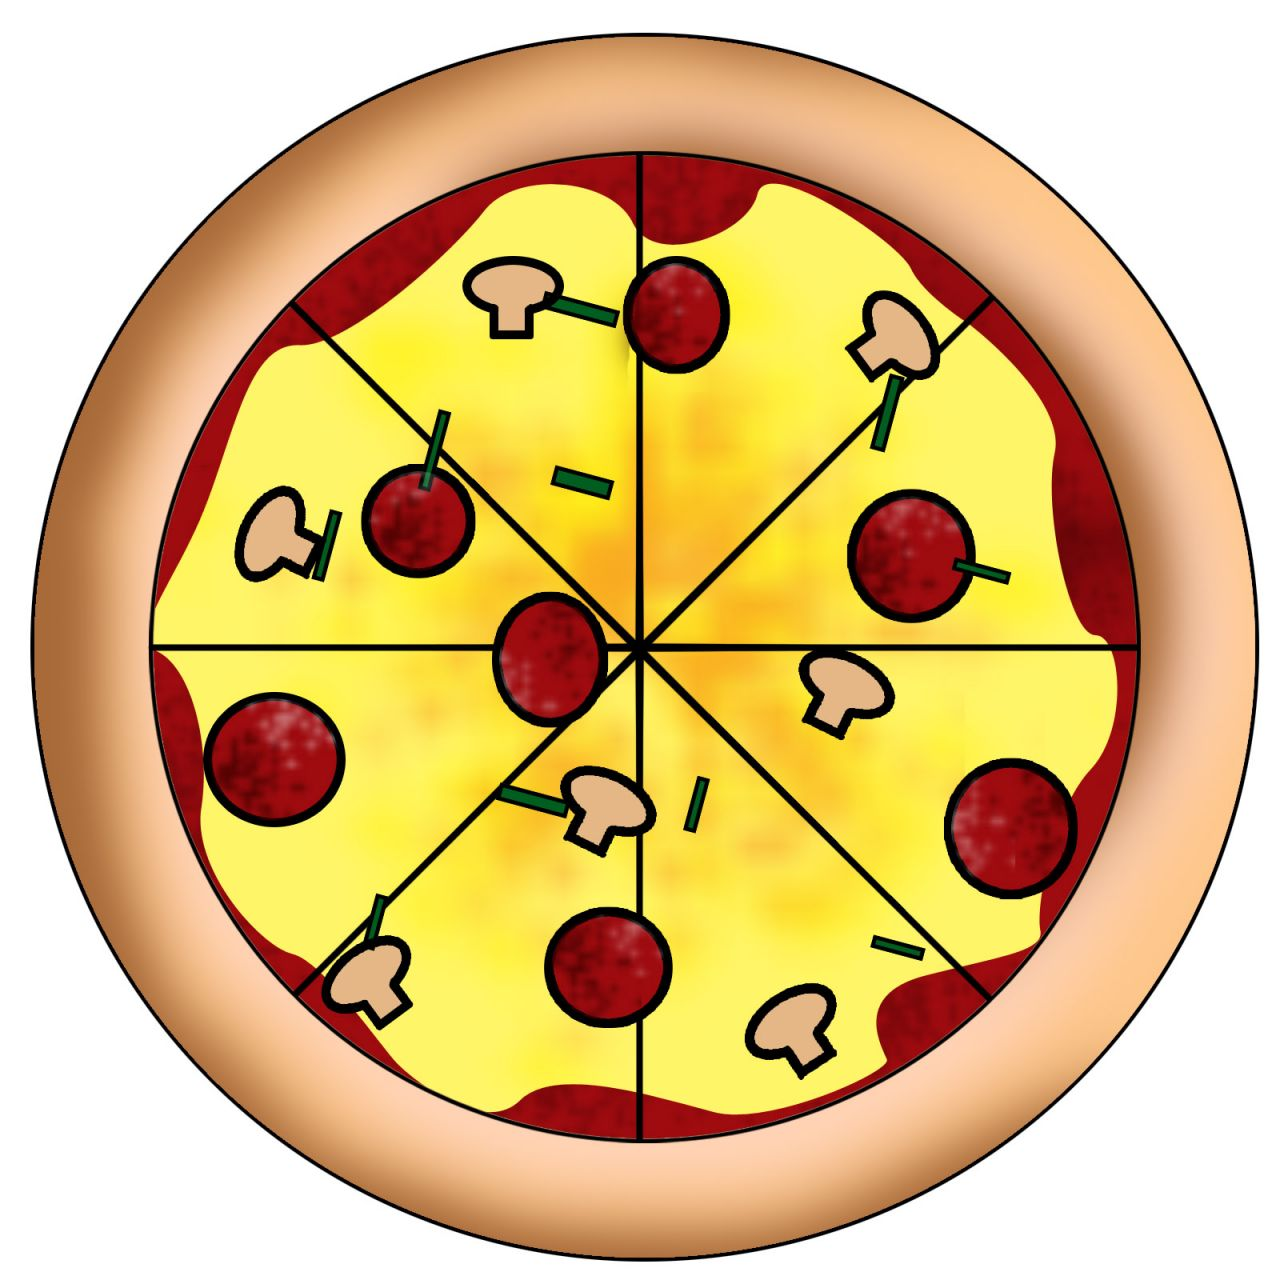 Pizza fractions clipart clipart transparent stock Free Cartoon Picture Of Pizza, Download Free Clip Art, Free Clip Art ... clipart transparent stock